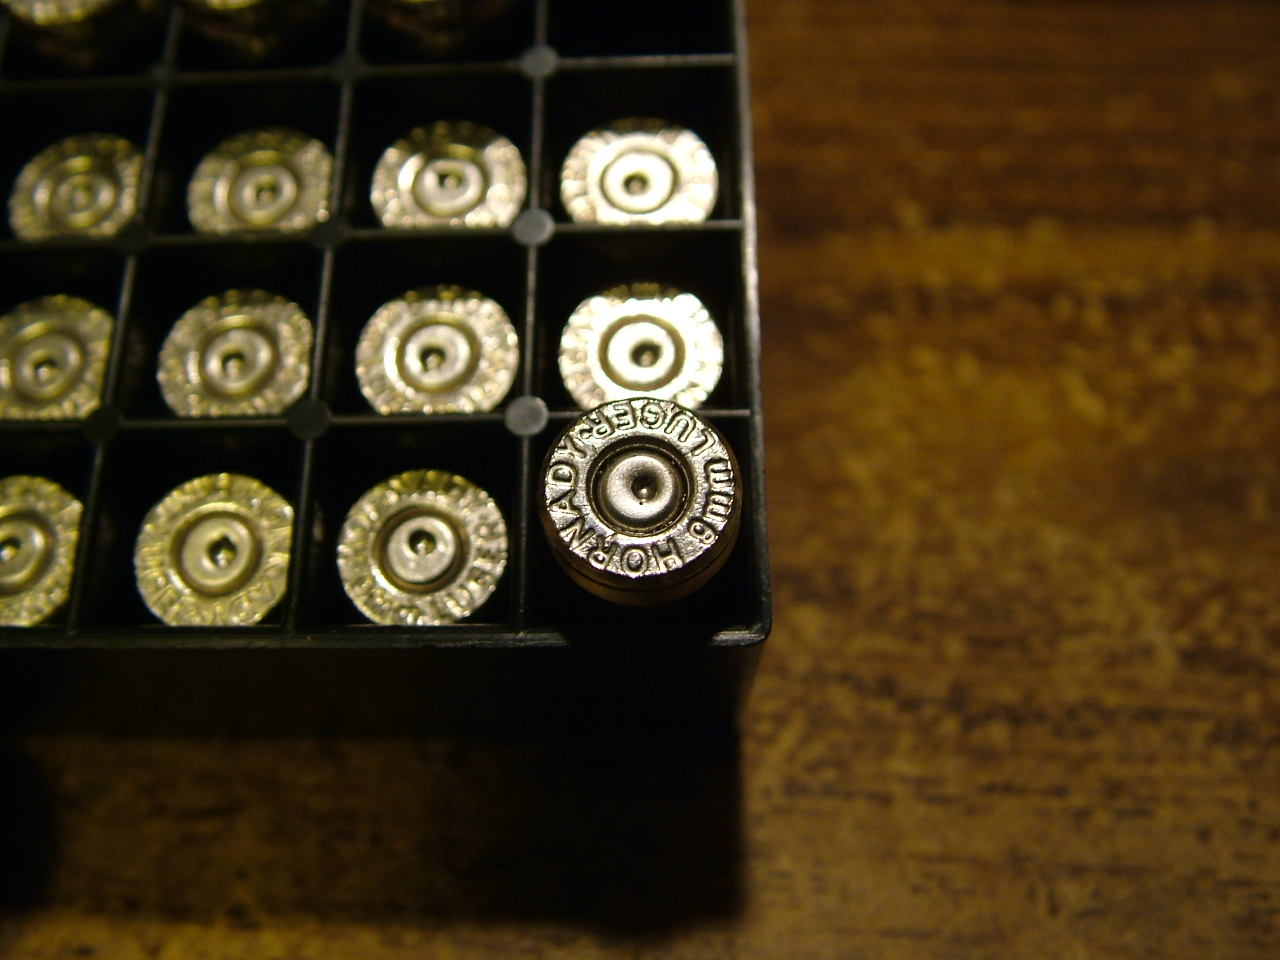 9mm 115gr Hornady Critical Defense issue today at the range-2012_0729cp0002.jpg